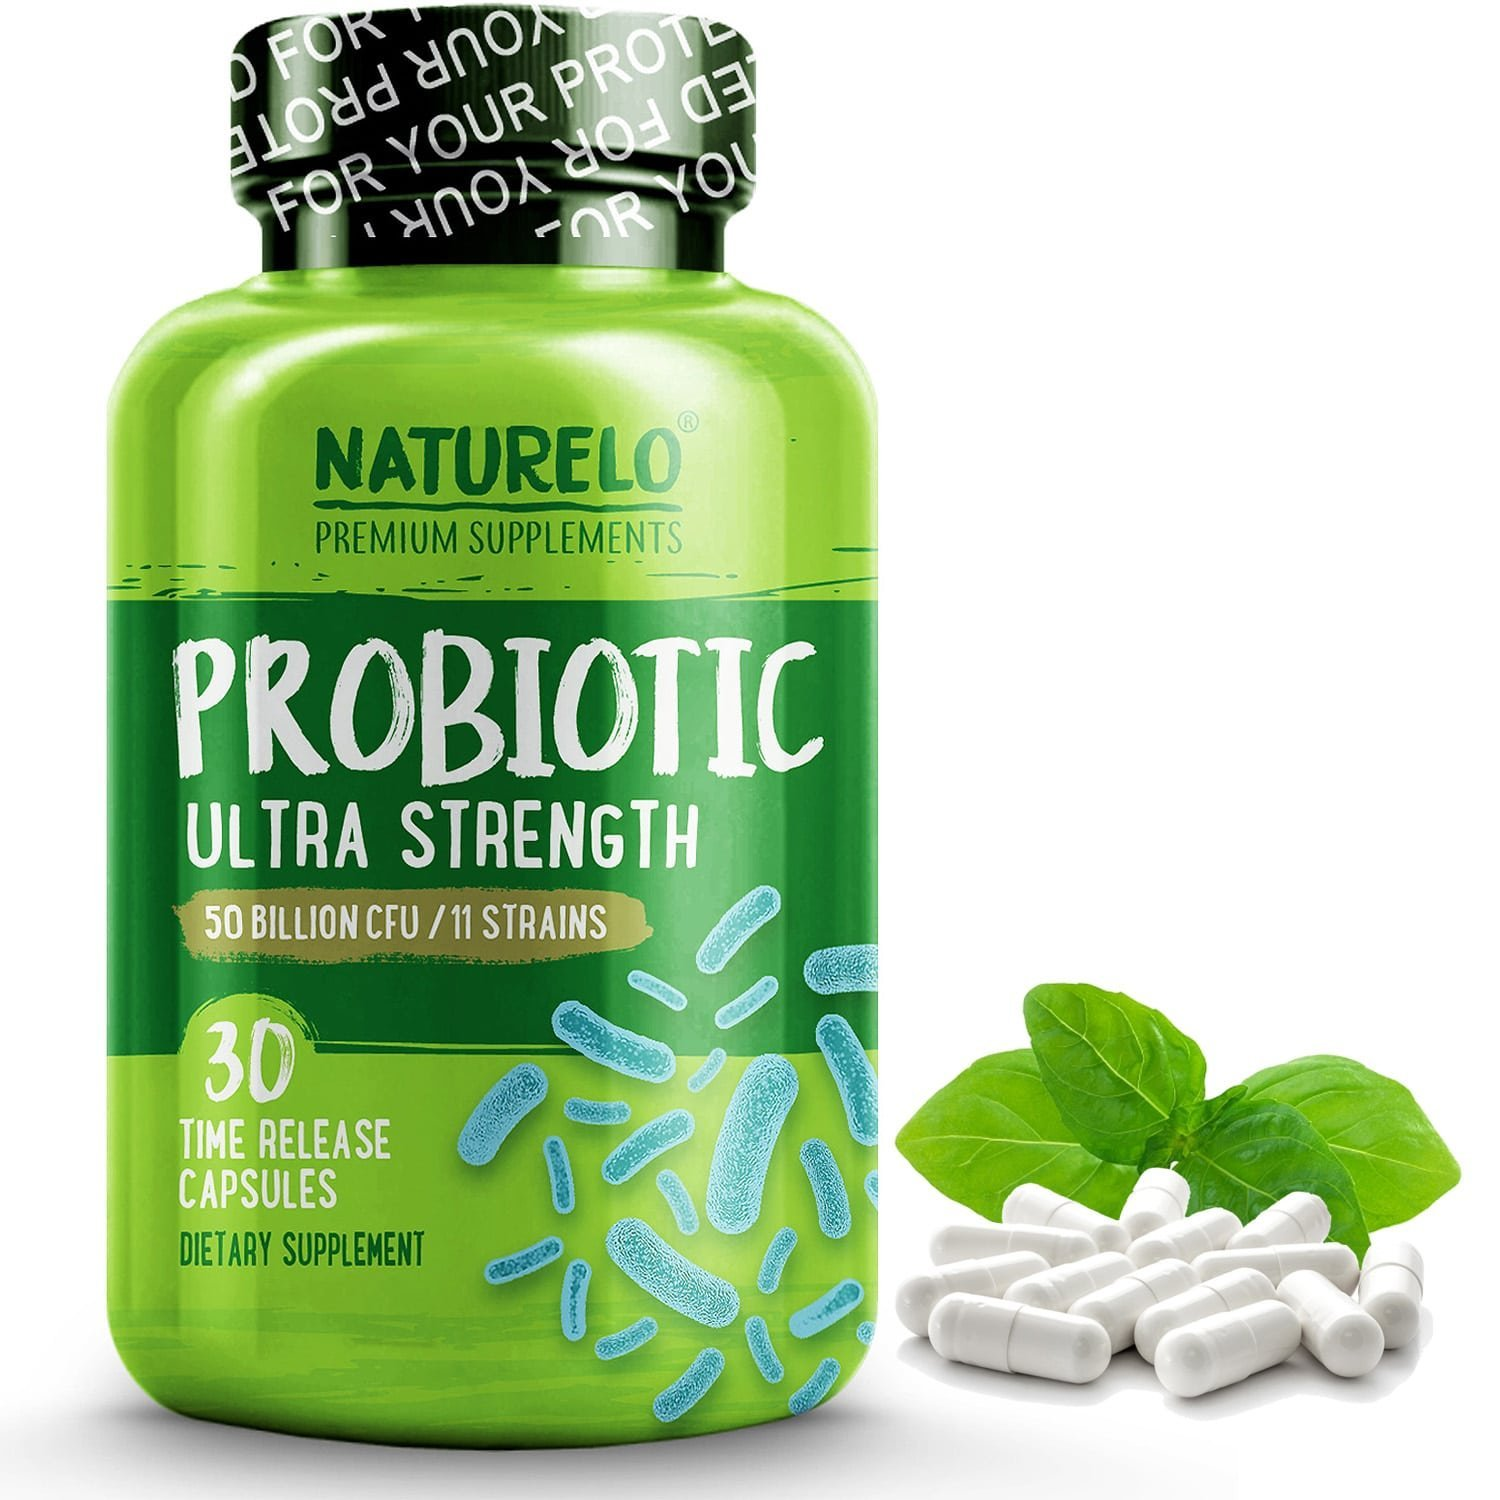 with 50 Billion Active Cultures ★ One Daily ★ Promotes Growth of Healthy Gut Bacteria ★ Helps Relieve Digestive Discomfort★ Boosts Immune System Function ★ No Refrigeration Required ★ Non-GMO ★ Gluten Free ★ Soy Free ★ Yeast Free ★ Dairy Free ★ 100% Natural ★ Vegan ★ Vegetarian ★ Made in USA